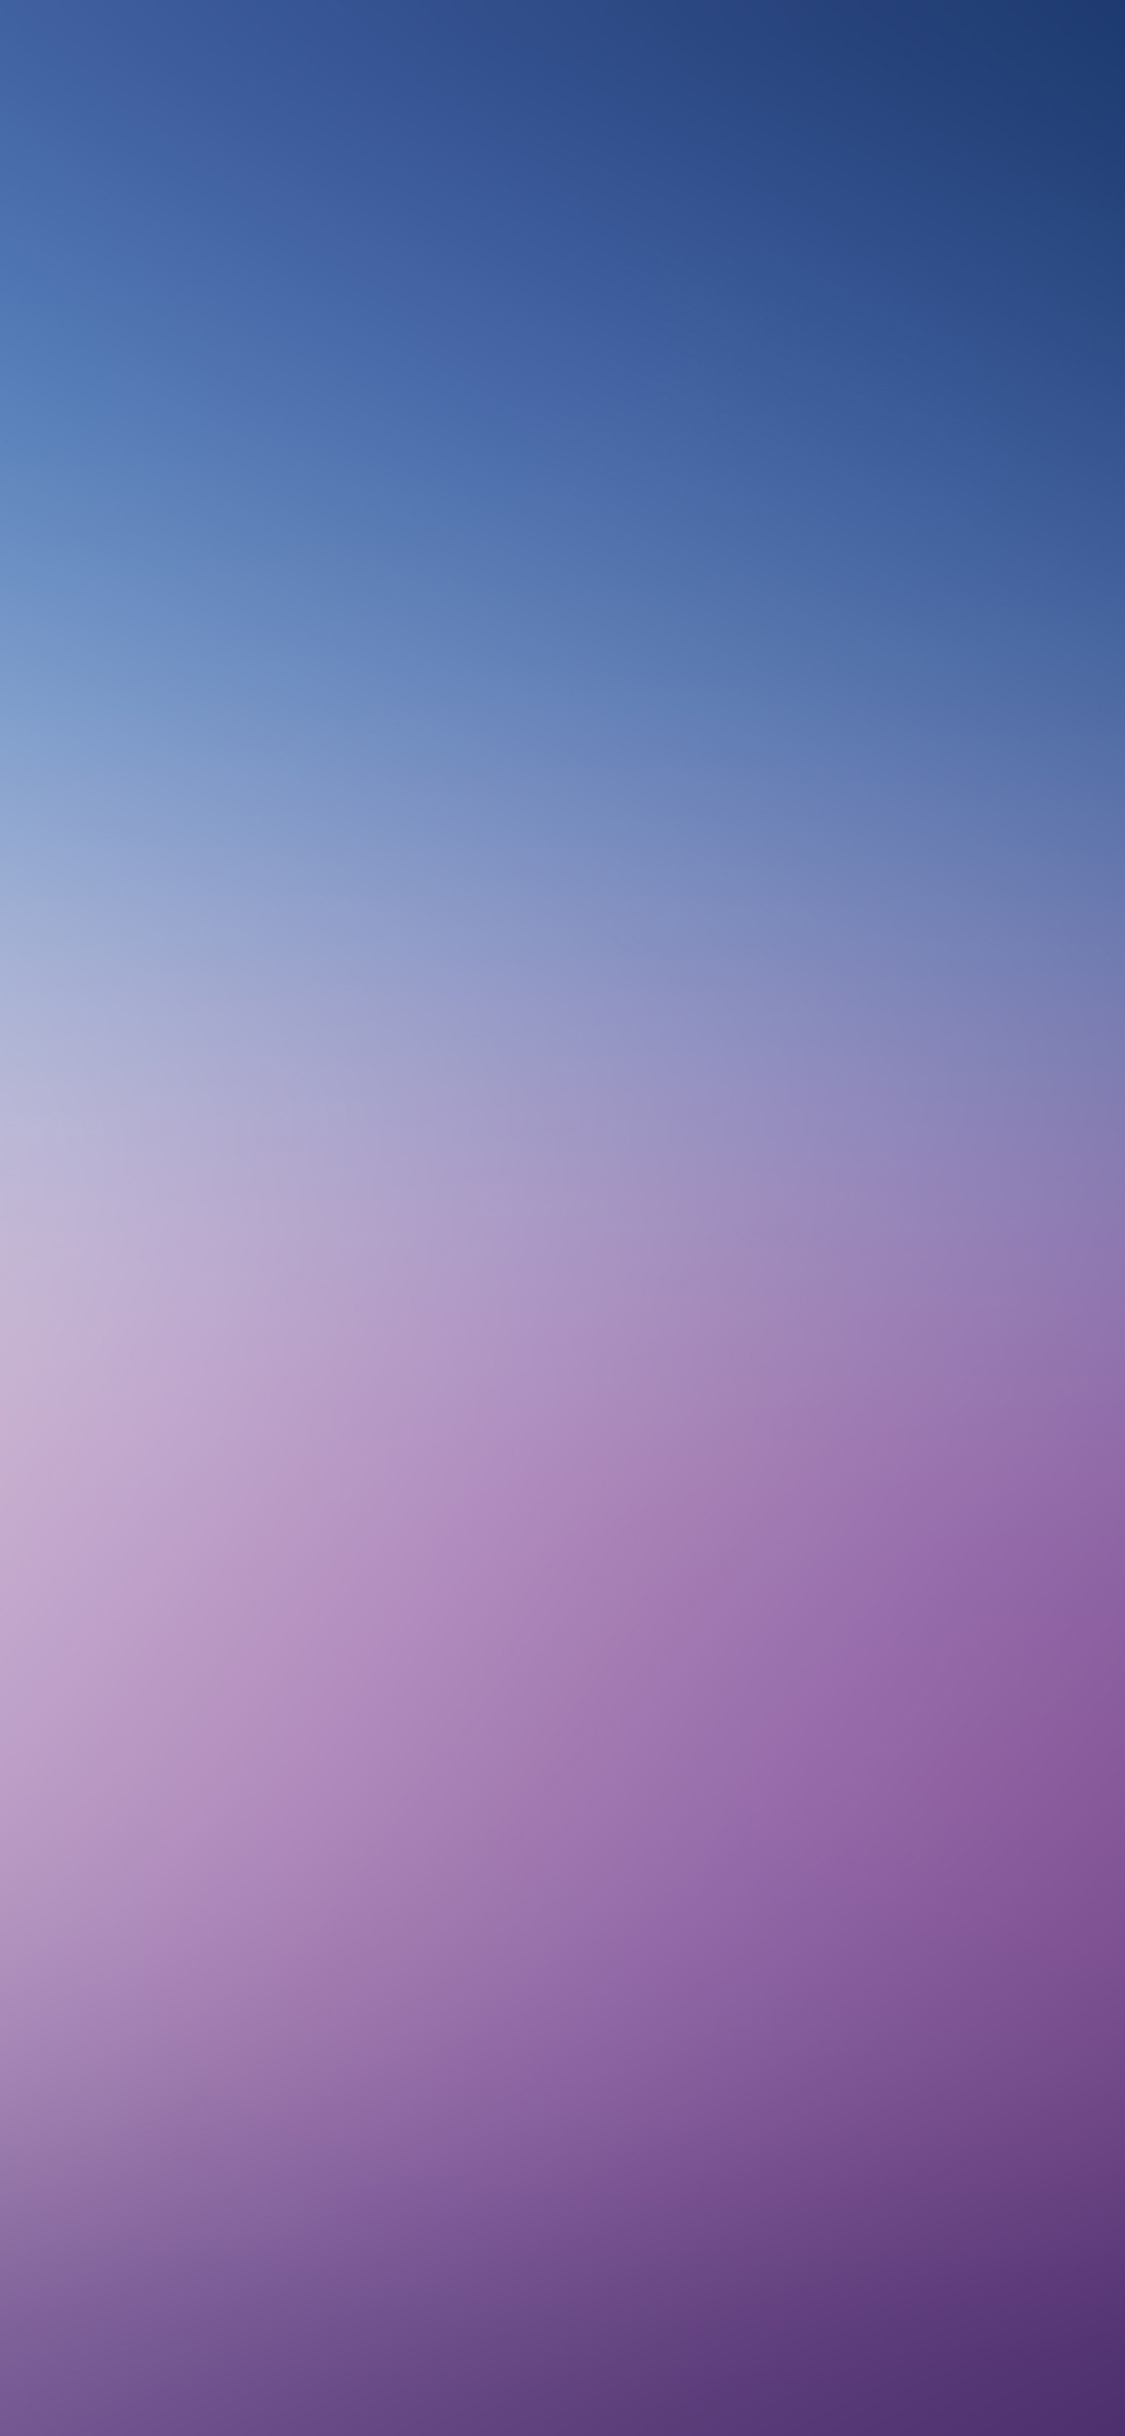 iPhoneXpapers.com-Apple-iPhone-wallpaper-sa86-wallpaper-thunder-purple-blur